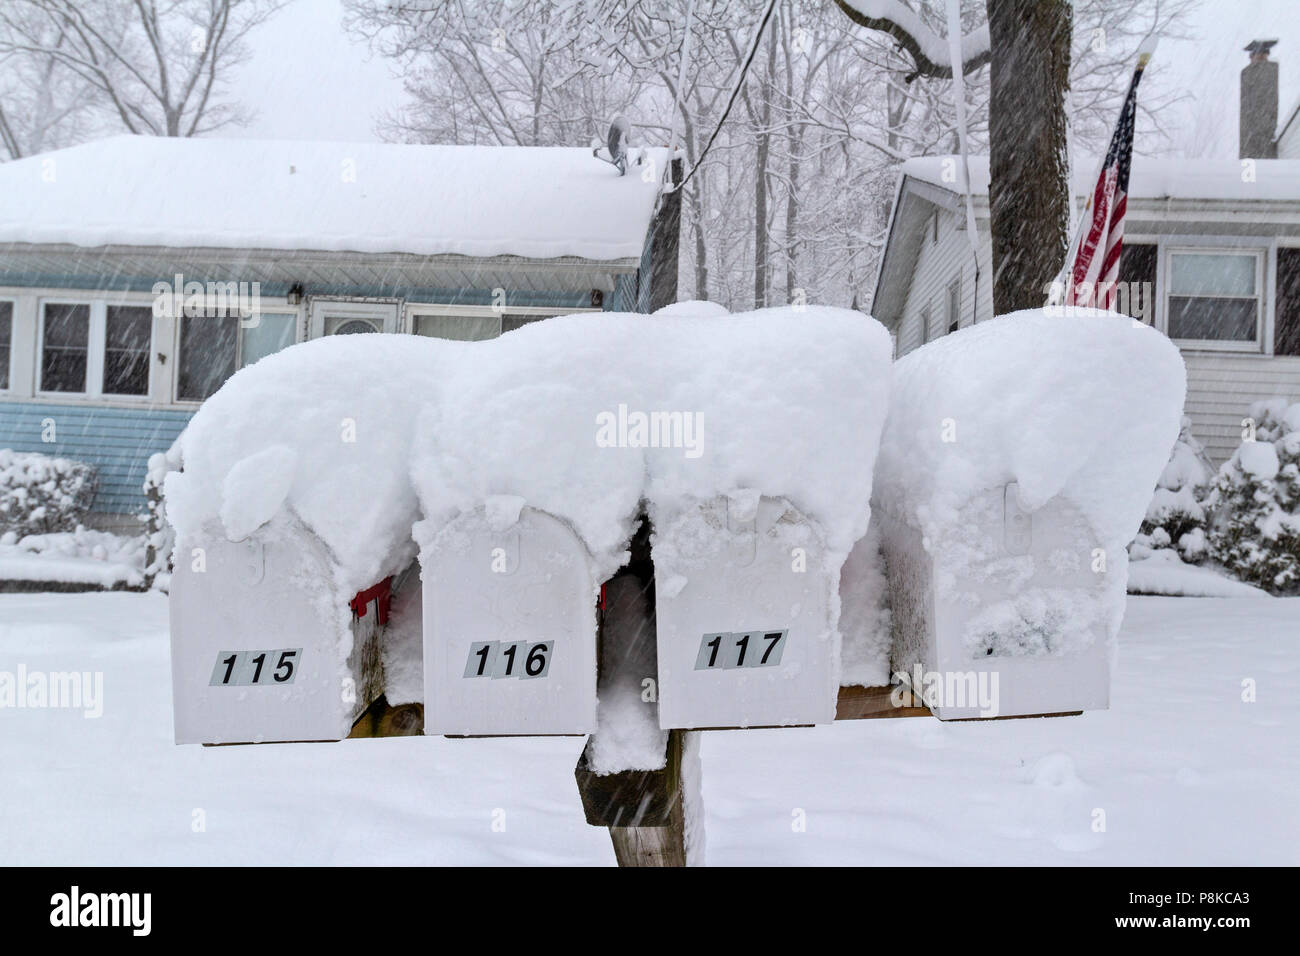 A winter snowstorm blankets a road and houses and mailboxes with freshly fallen snow. - Stock Image